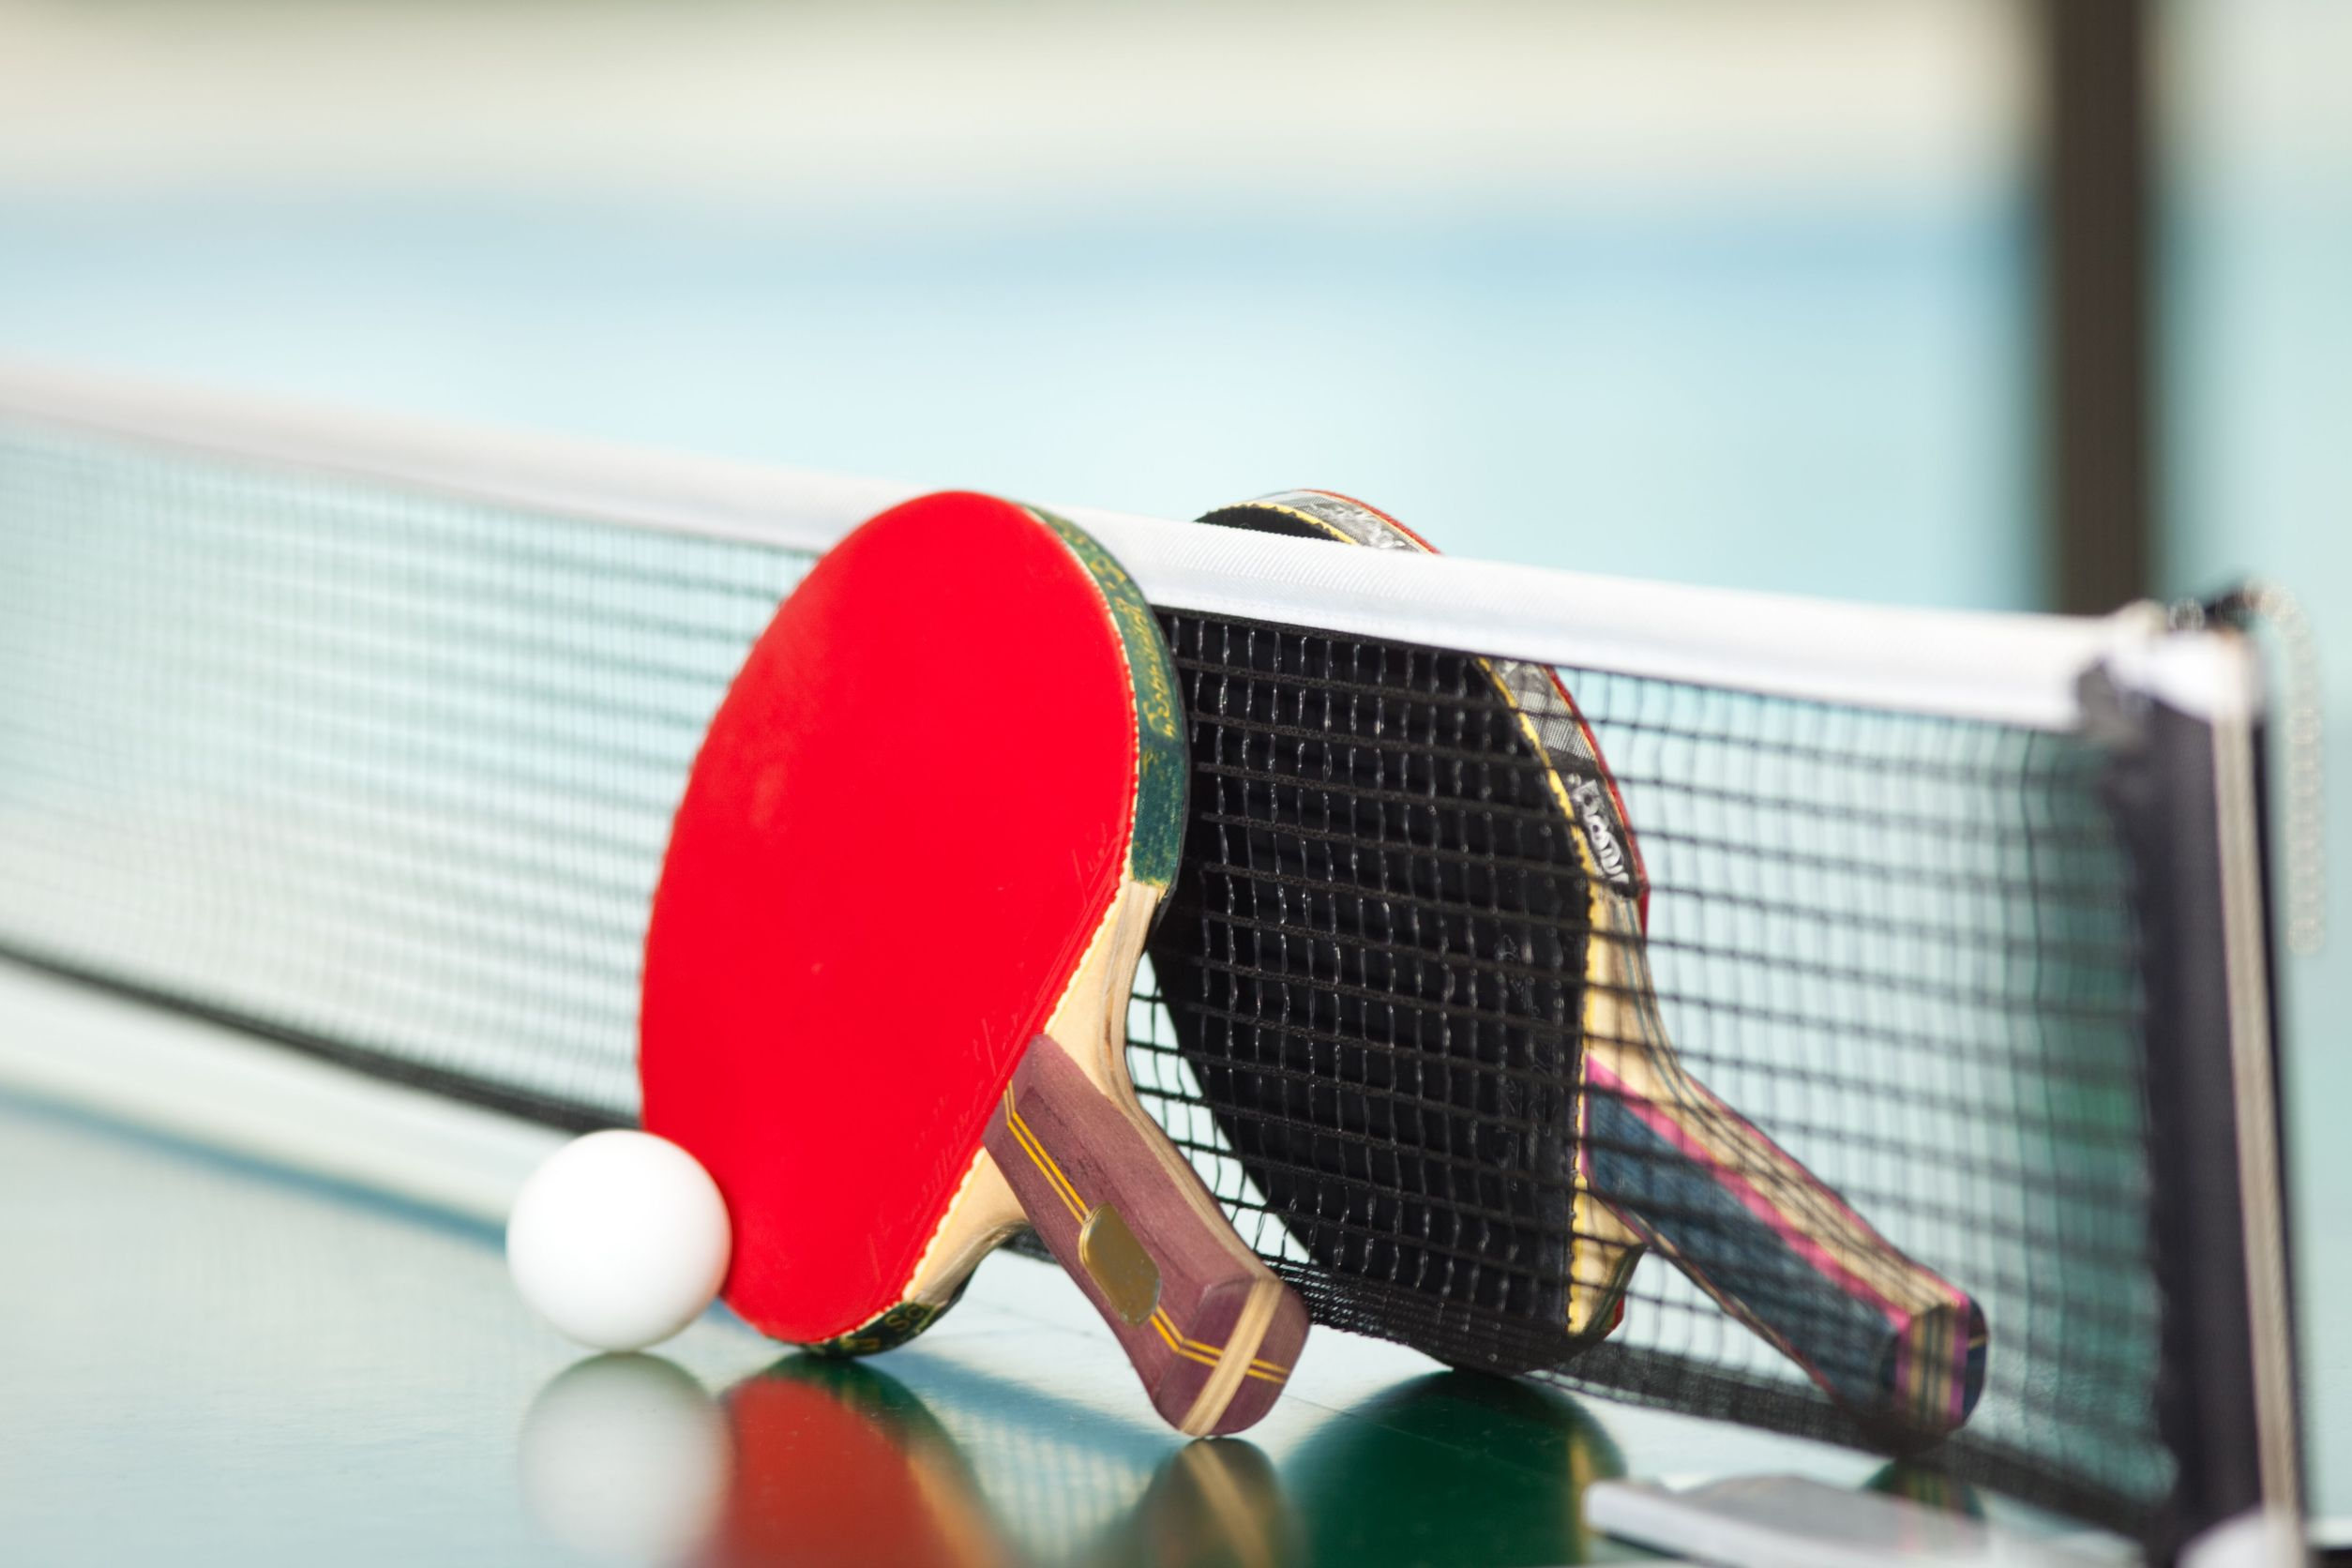 2017Sport Rackets for table tennis at the net 112857